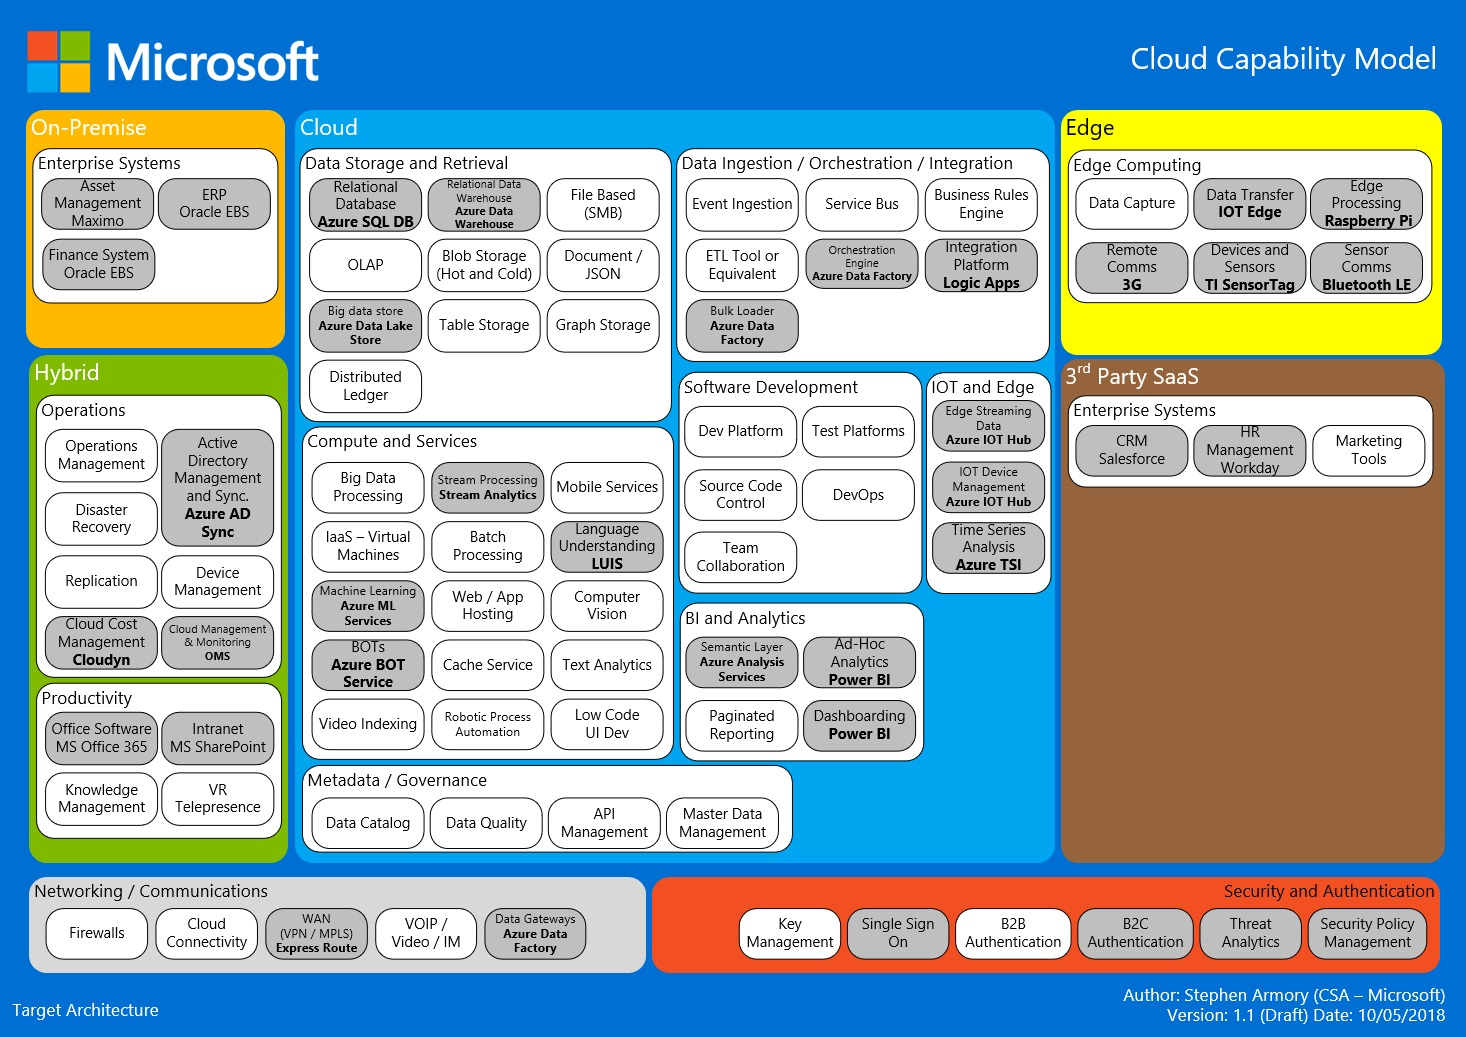 An example of an up to date Cloud Capability Model